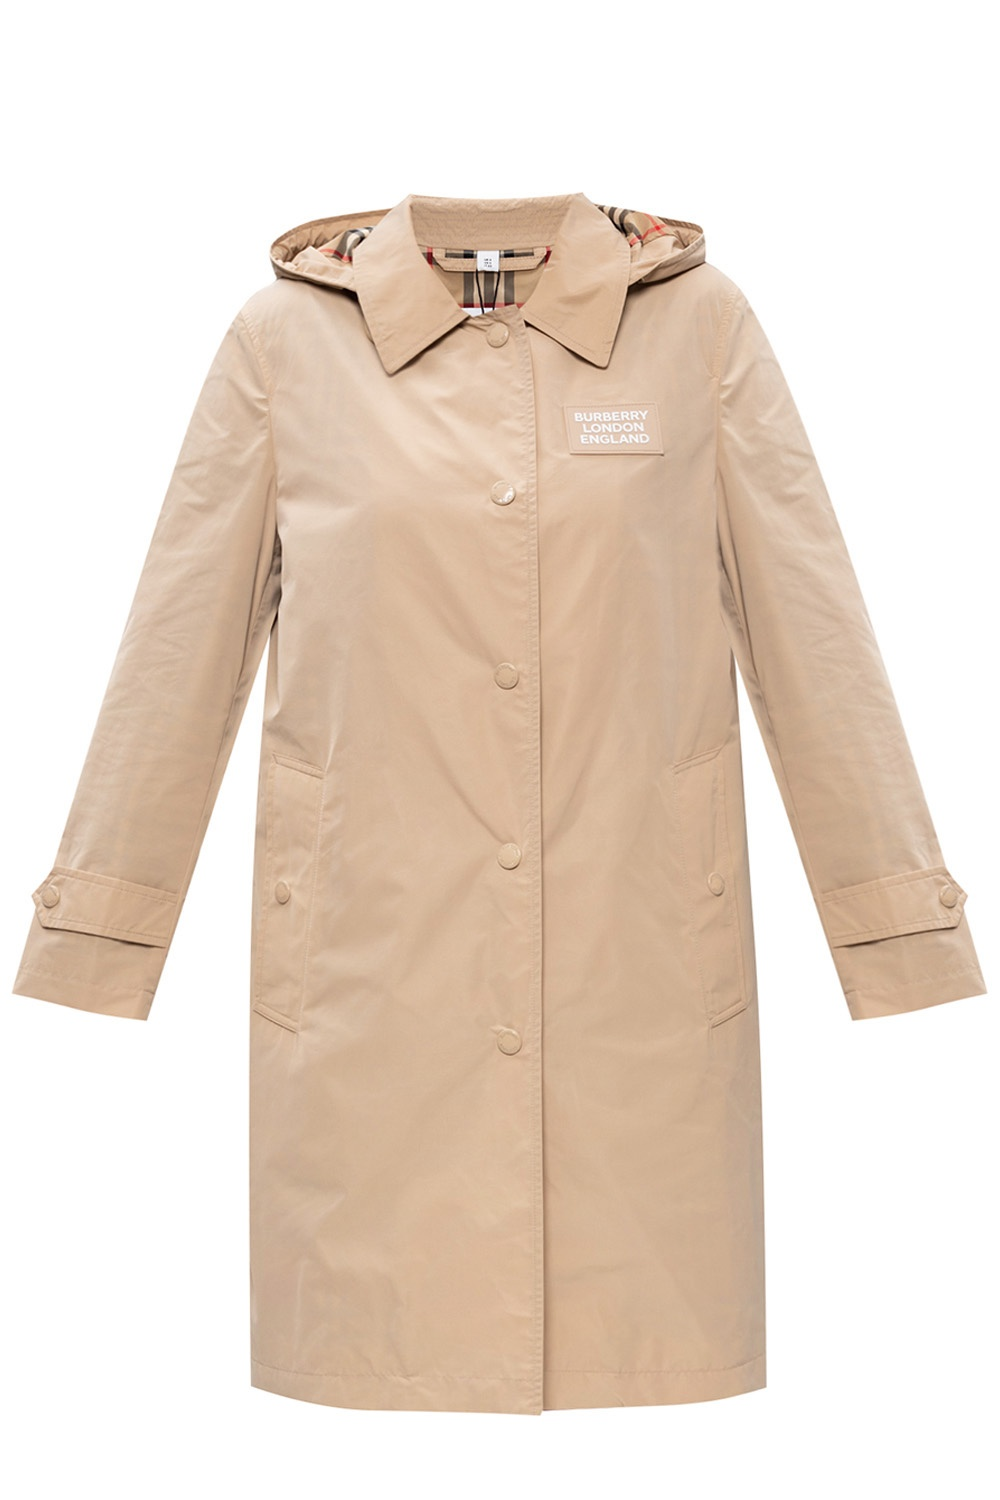 Burberry Trench coat with removable hood